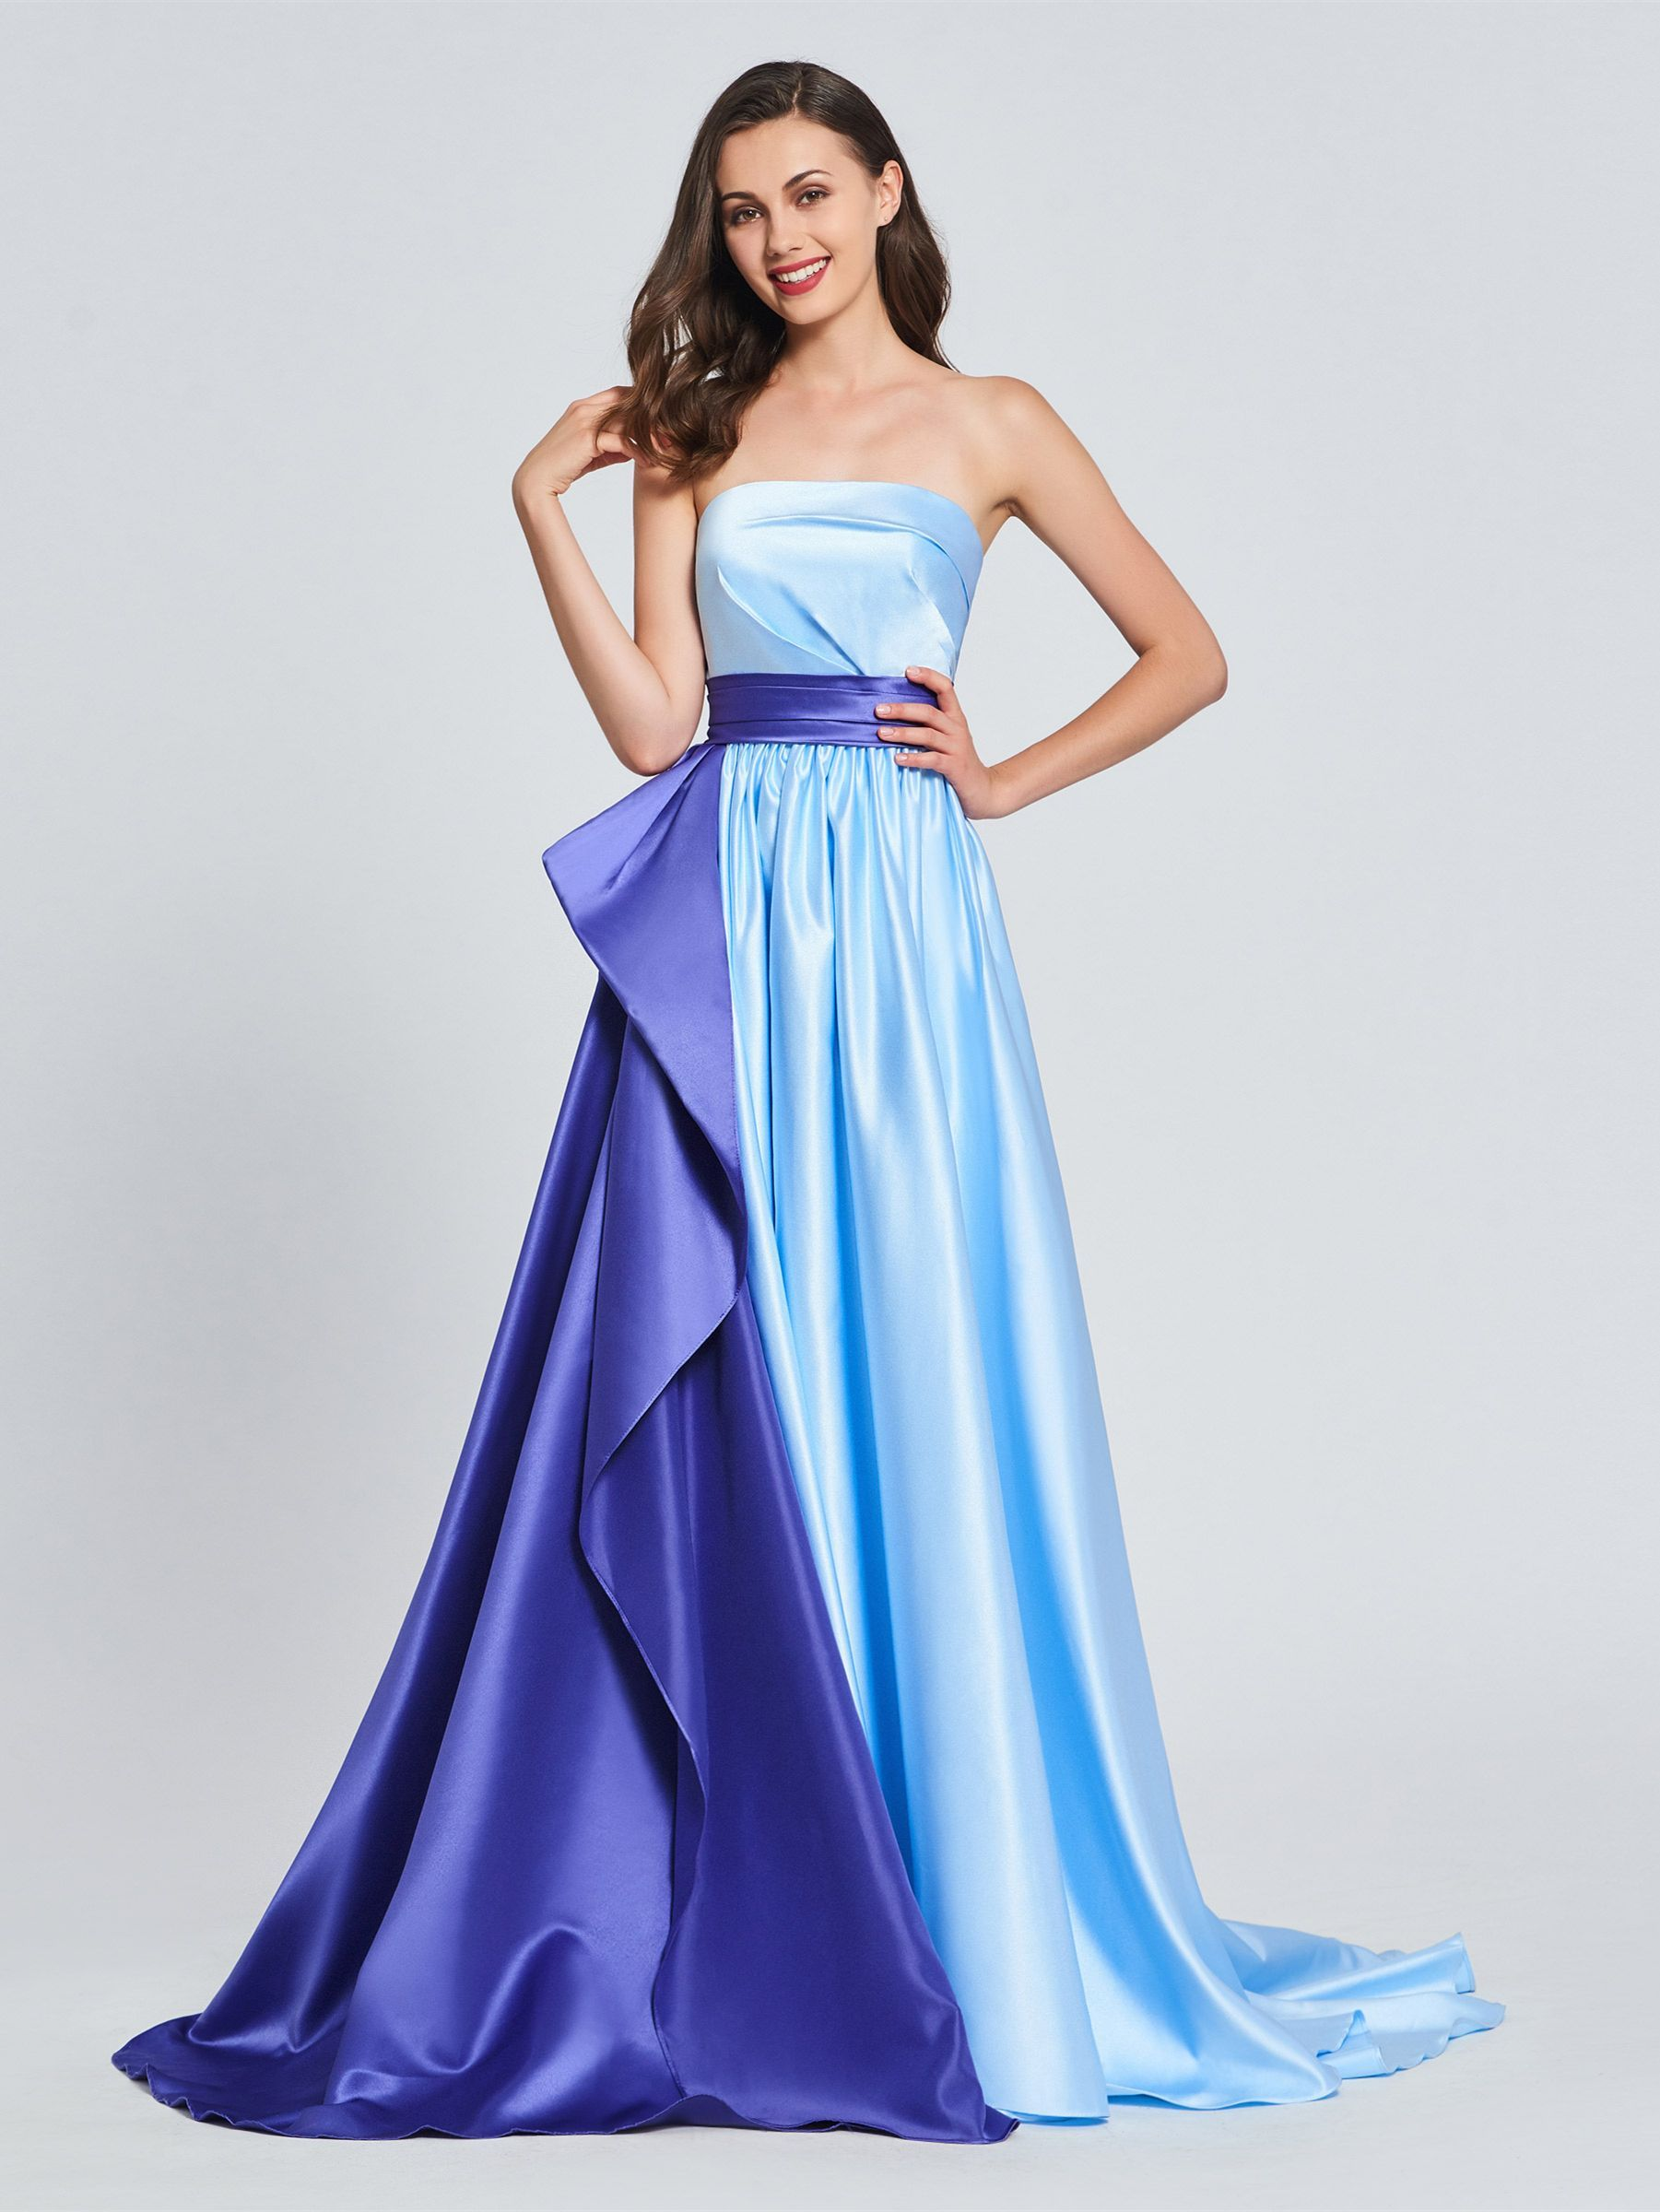 A Line Strapless Ruffles Sashes Prom Dress Cheap Gowns Dresses Backless Prom Dresses [ 2400 x 1801 Pixel ]